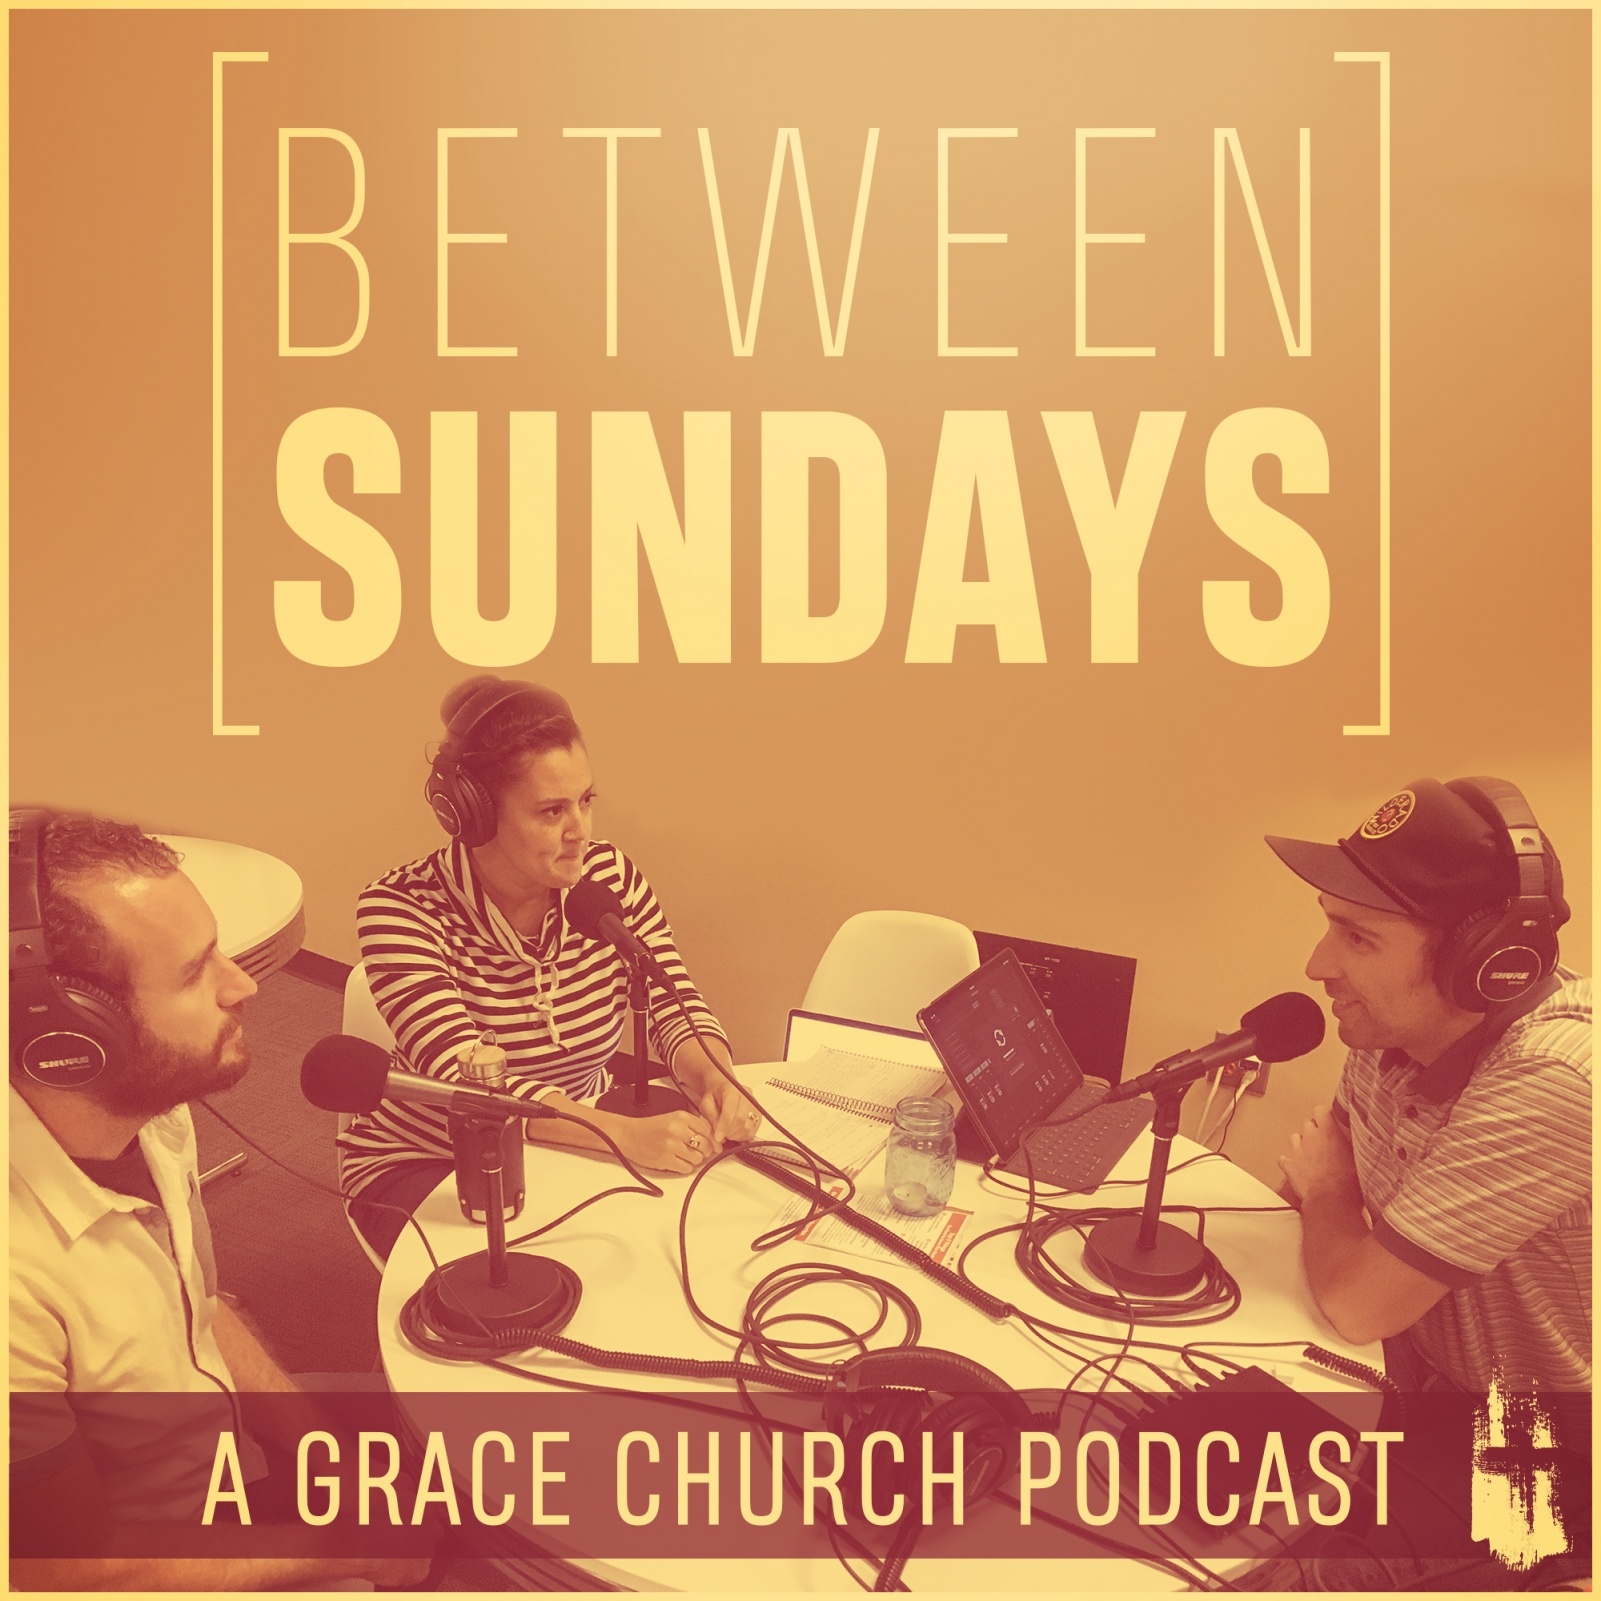 Between Sundays Episode 23 The Good Samaritan